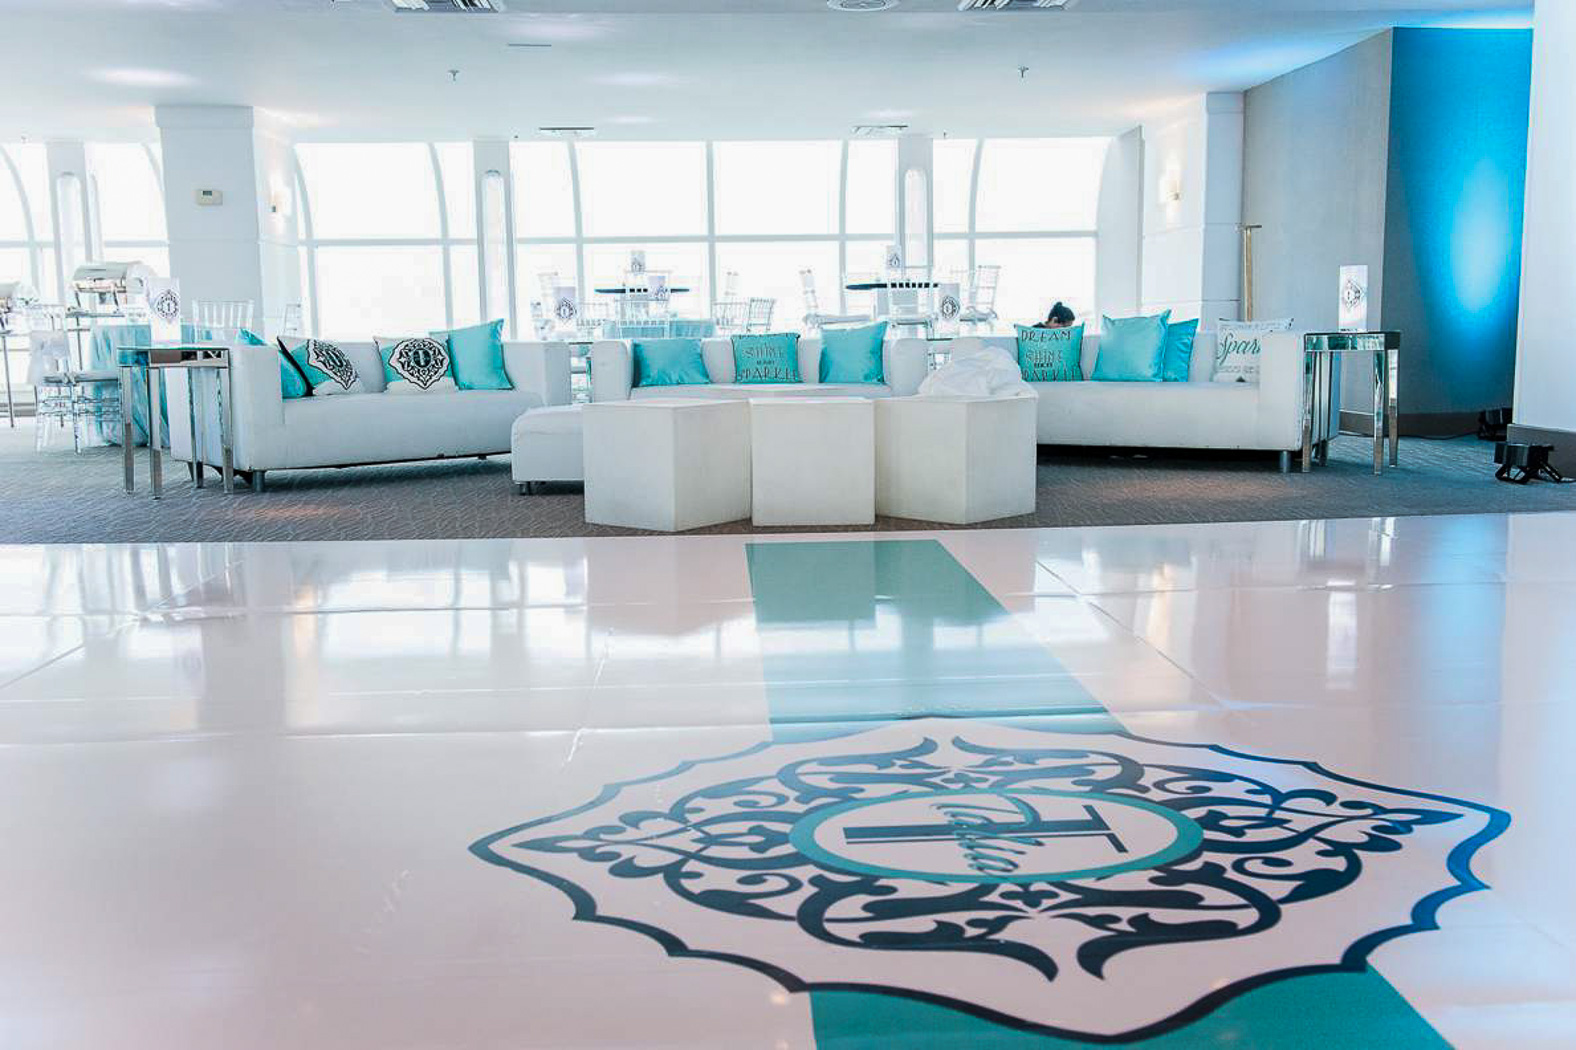 Ballroom with with white tile dance floor and white furniture with blue accents